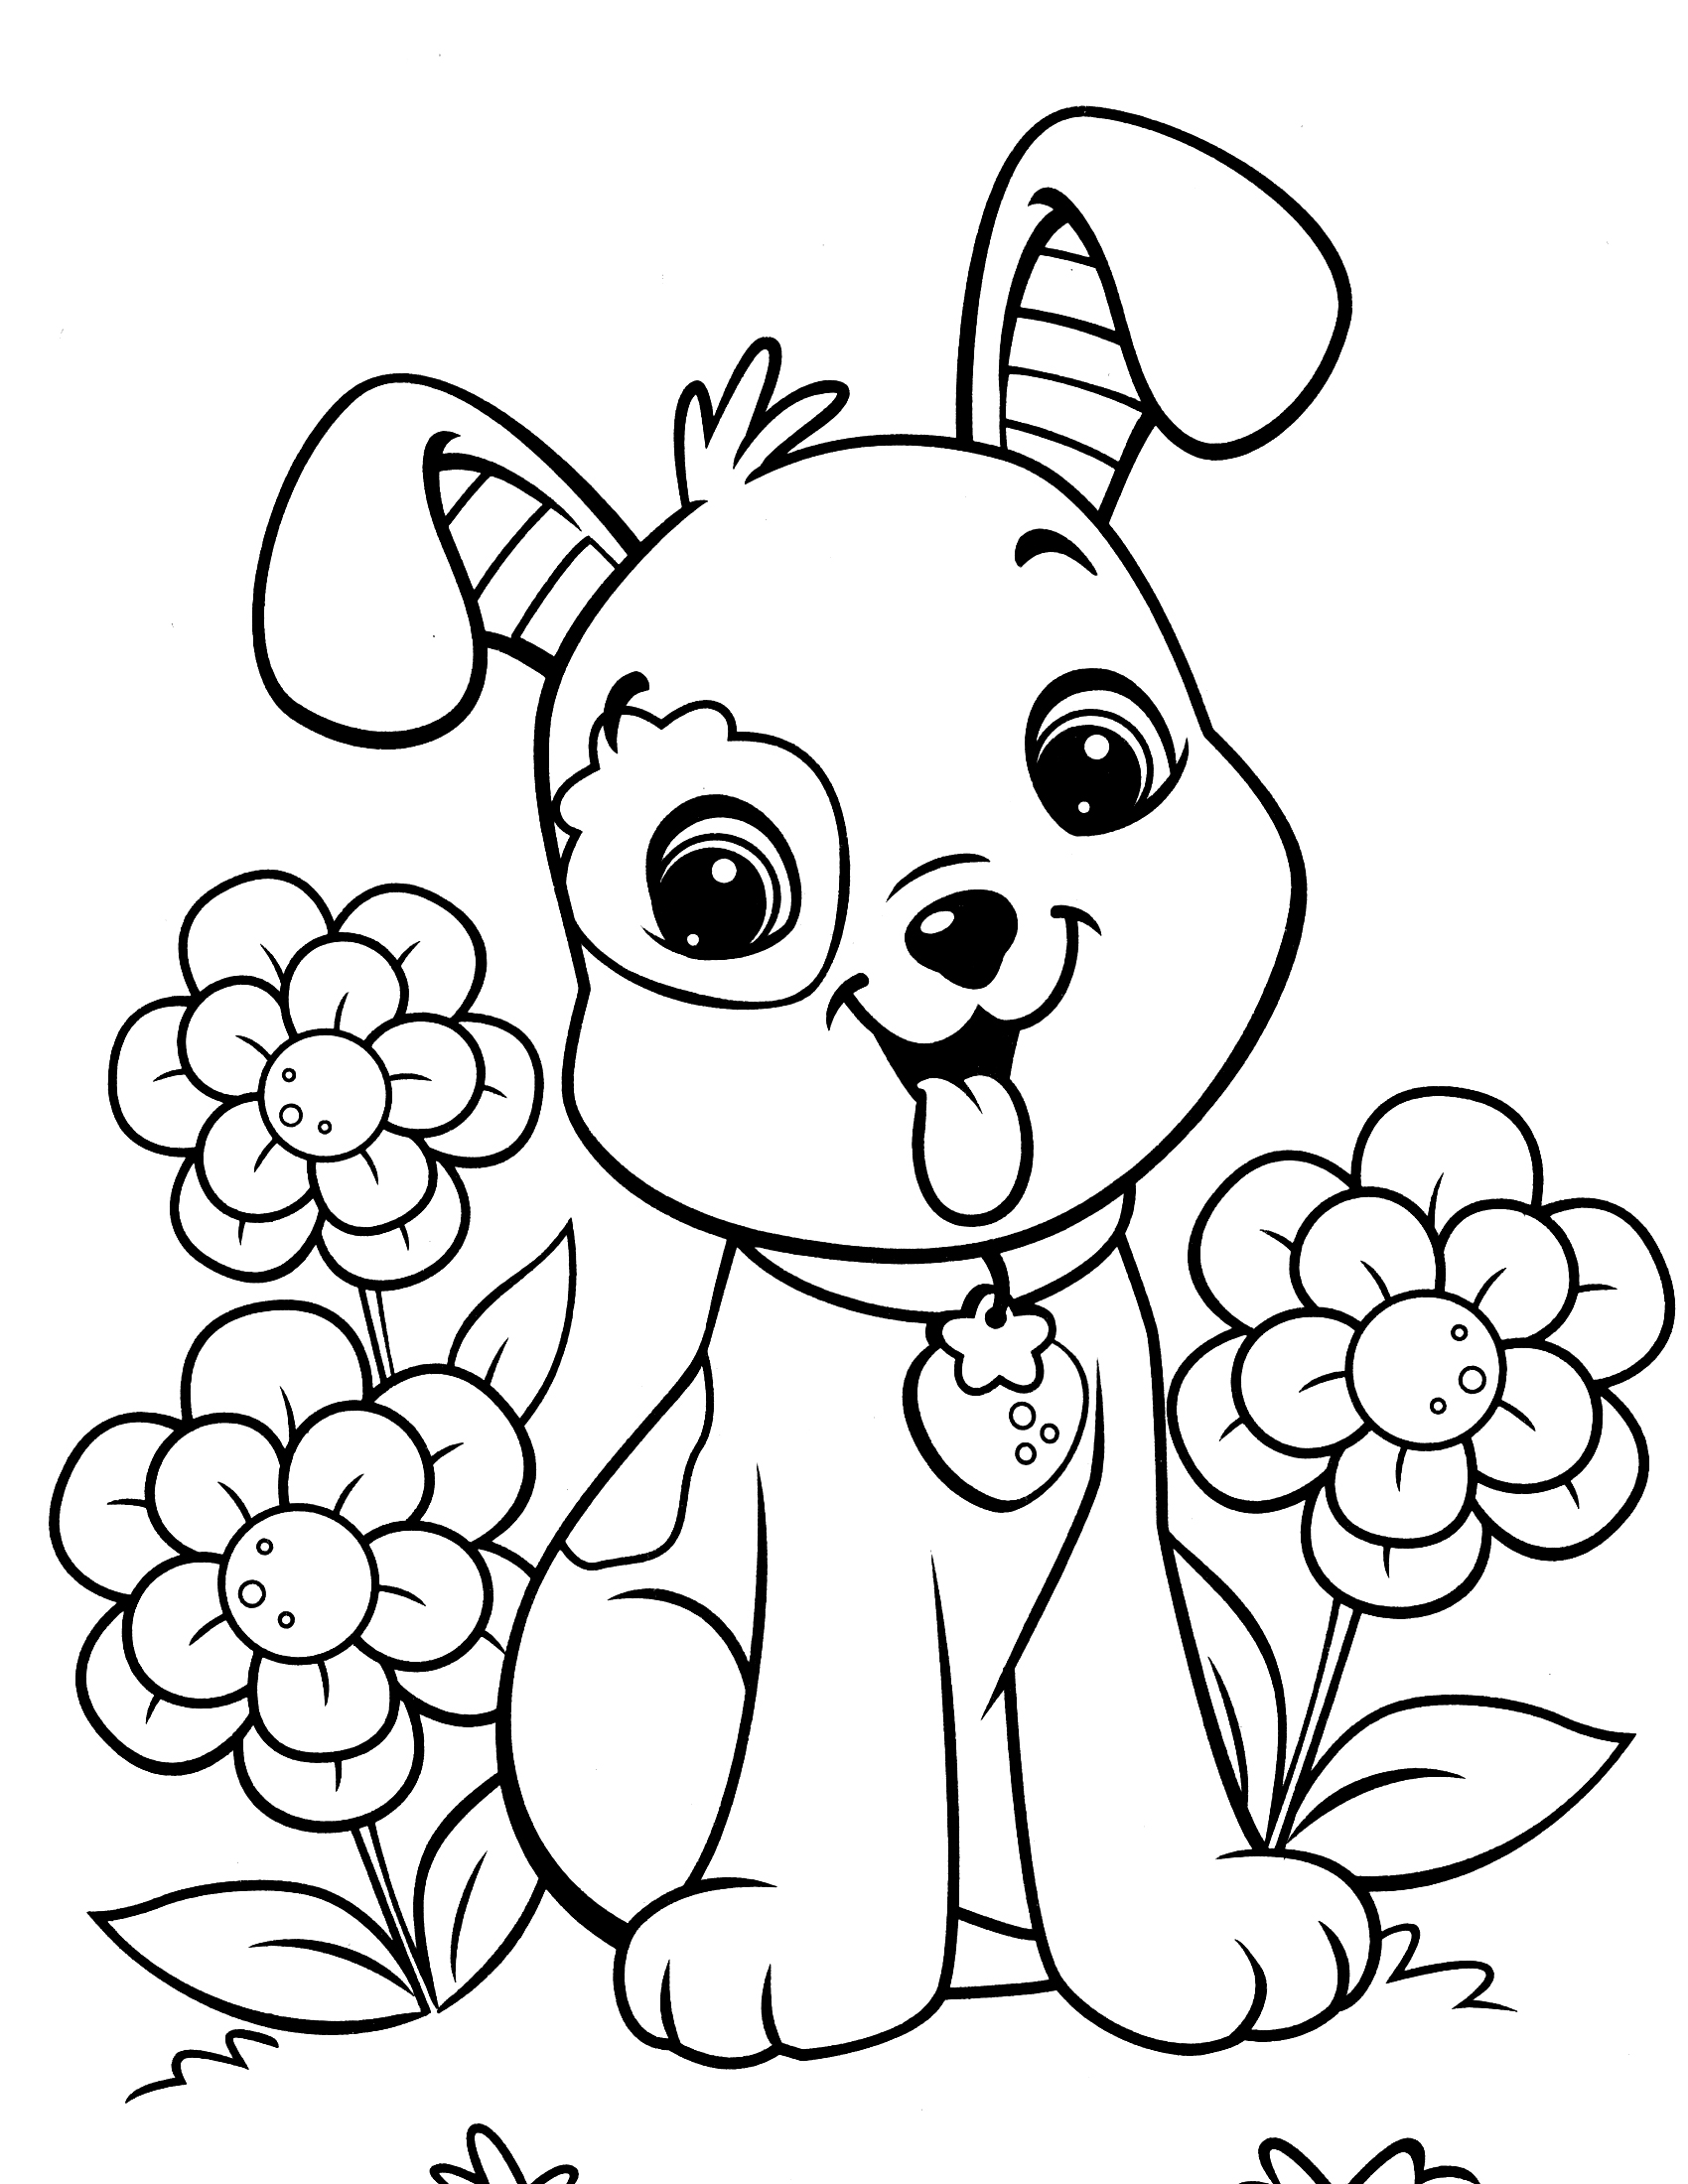 dog coloring pictures to print dog coloring pages for kids preschool and kindergarten dog print pictures to coloring